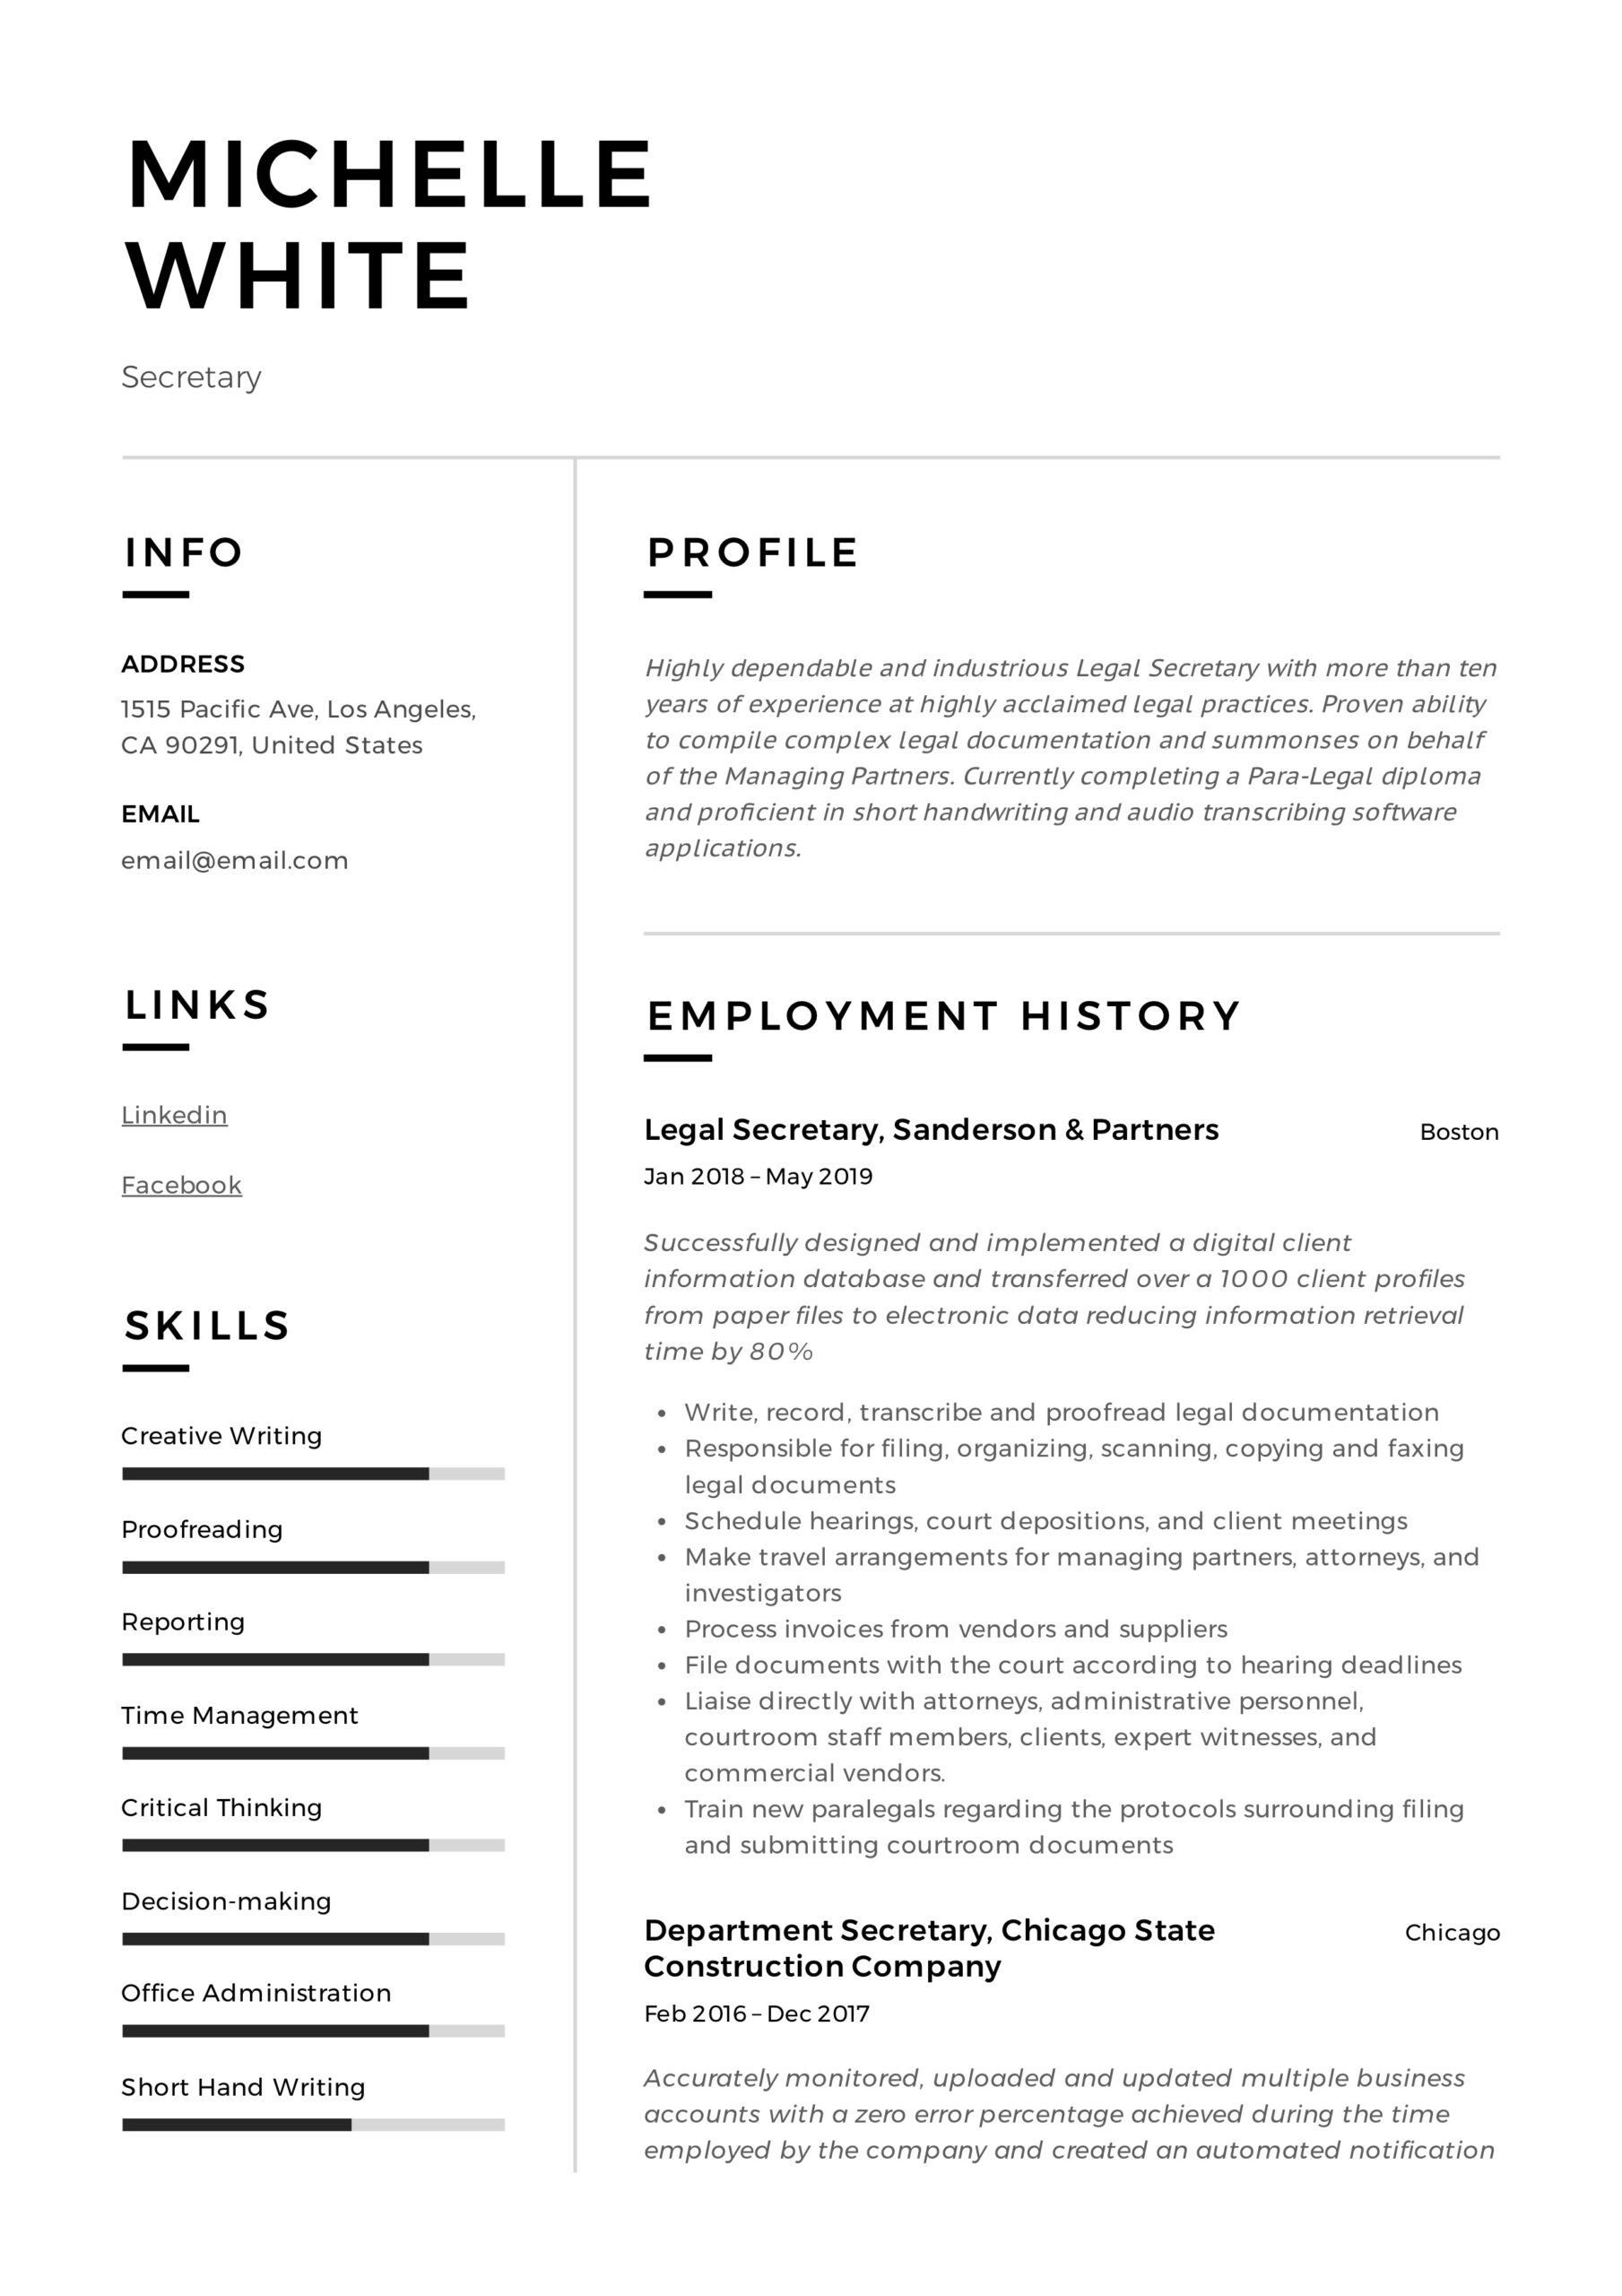 secretary resume writing guide template samples pdf sample for school position summary Resume Sample Resume For School Secretary Position